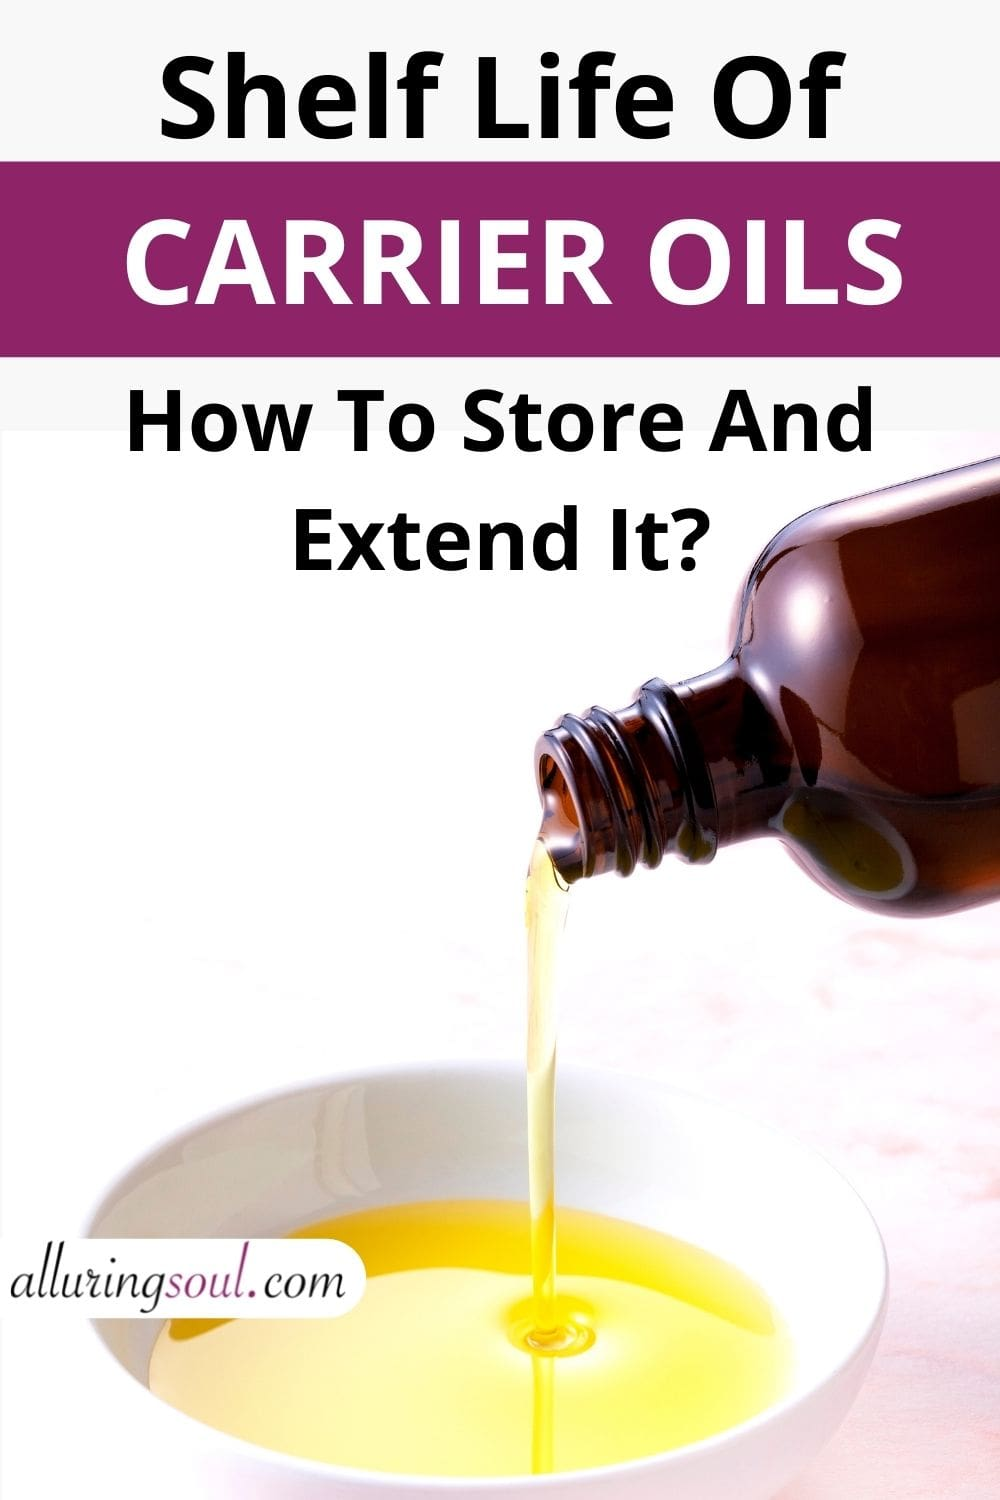 Shelf Life Of Carrier Oils (And How To Store And Extend It?)